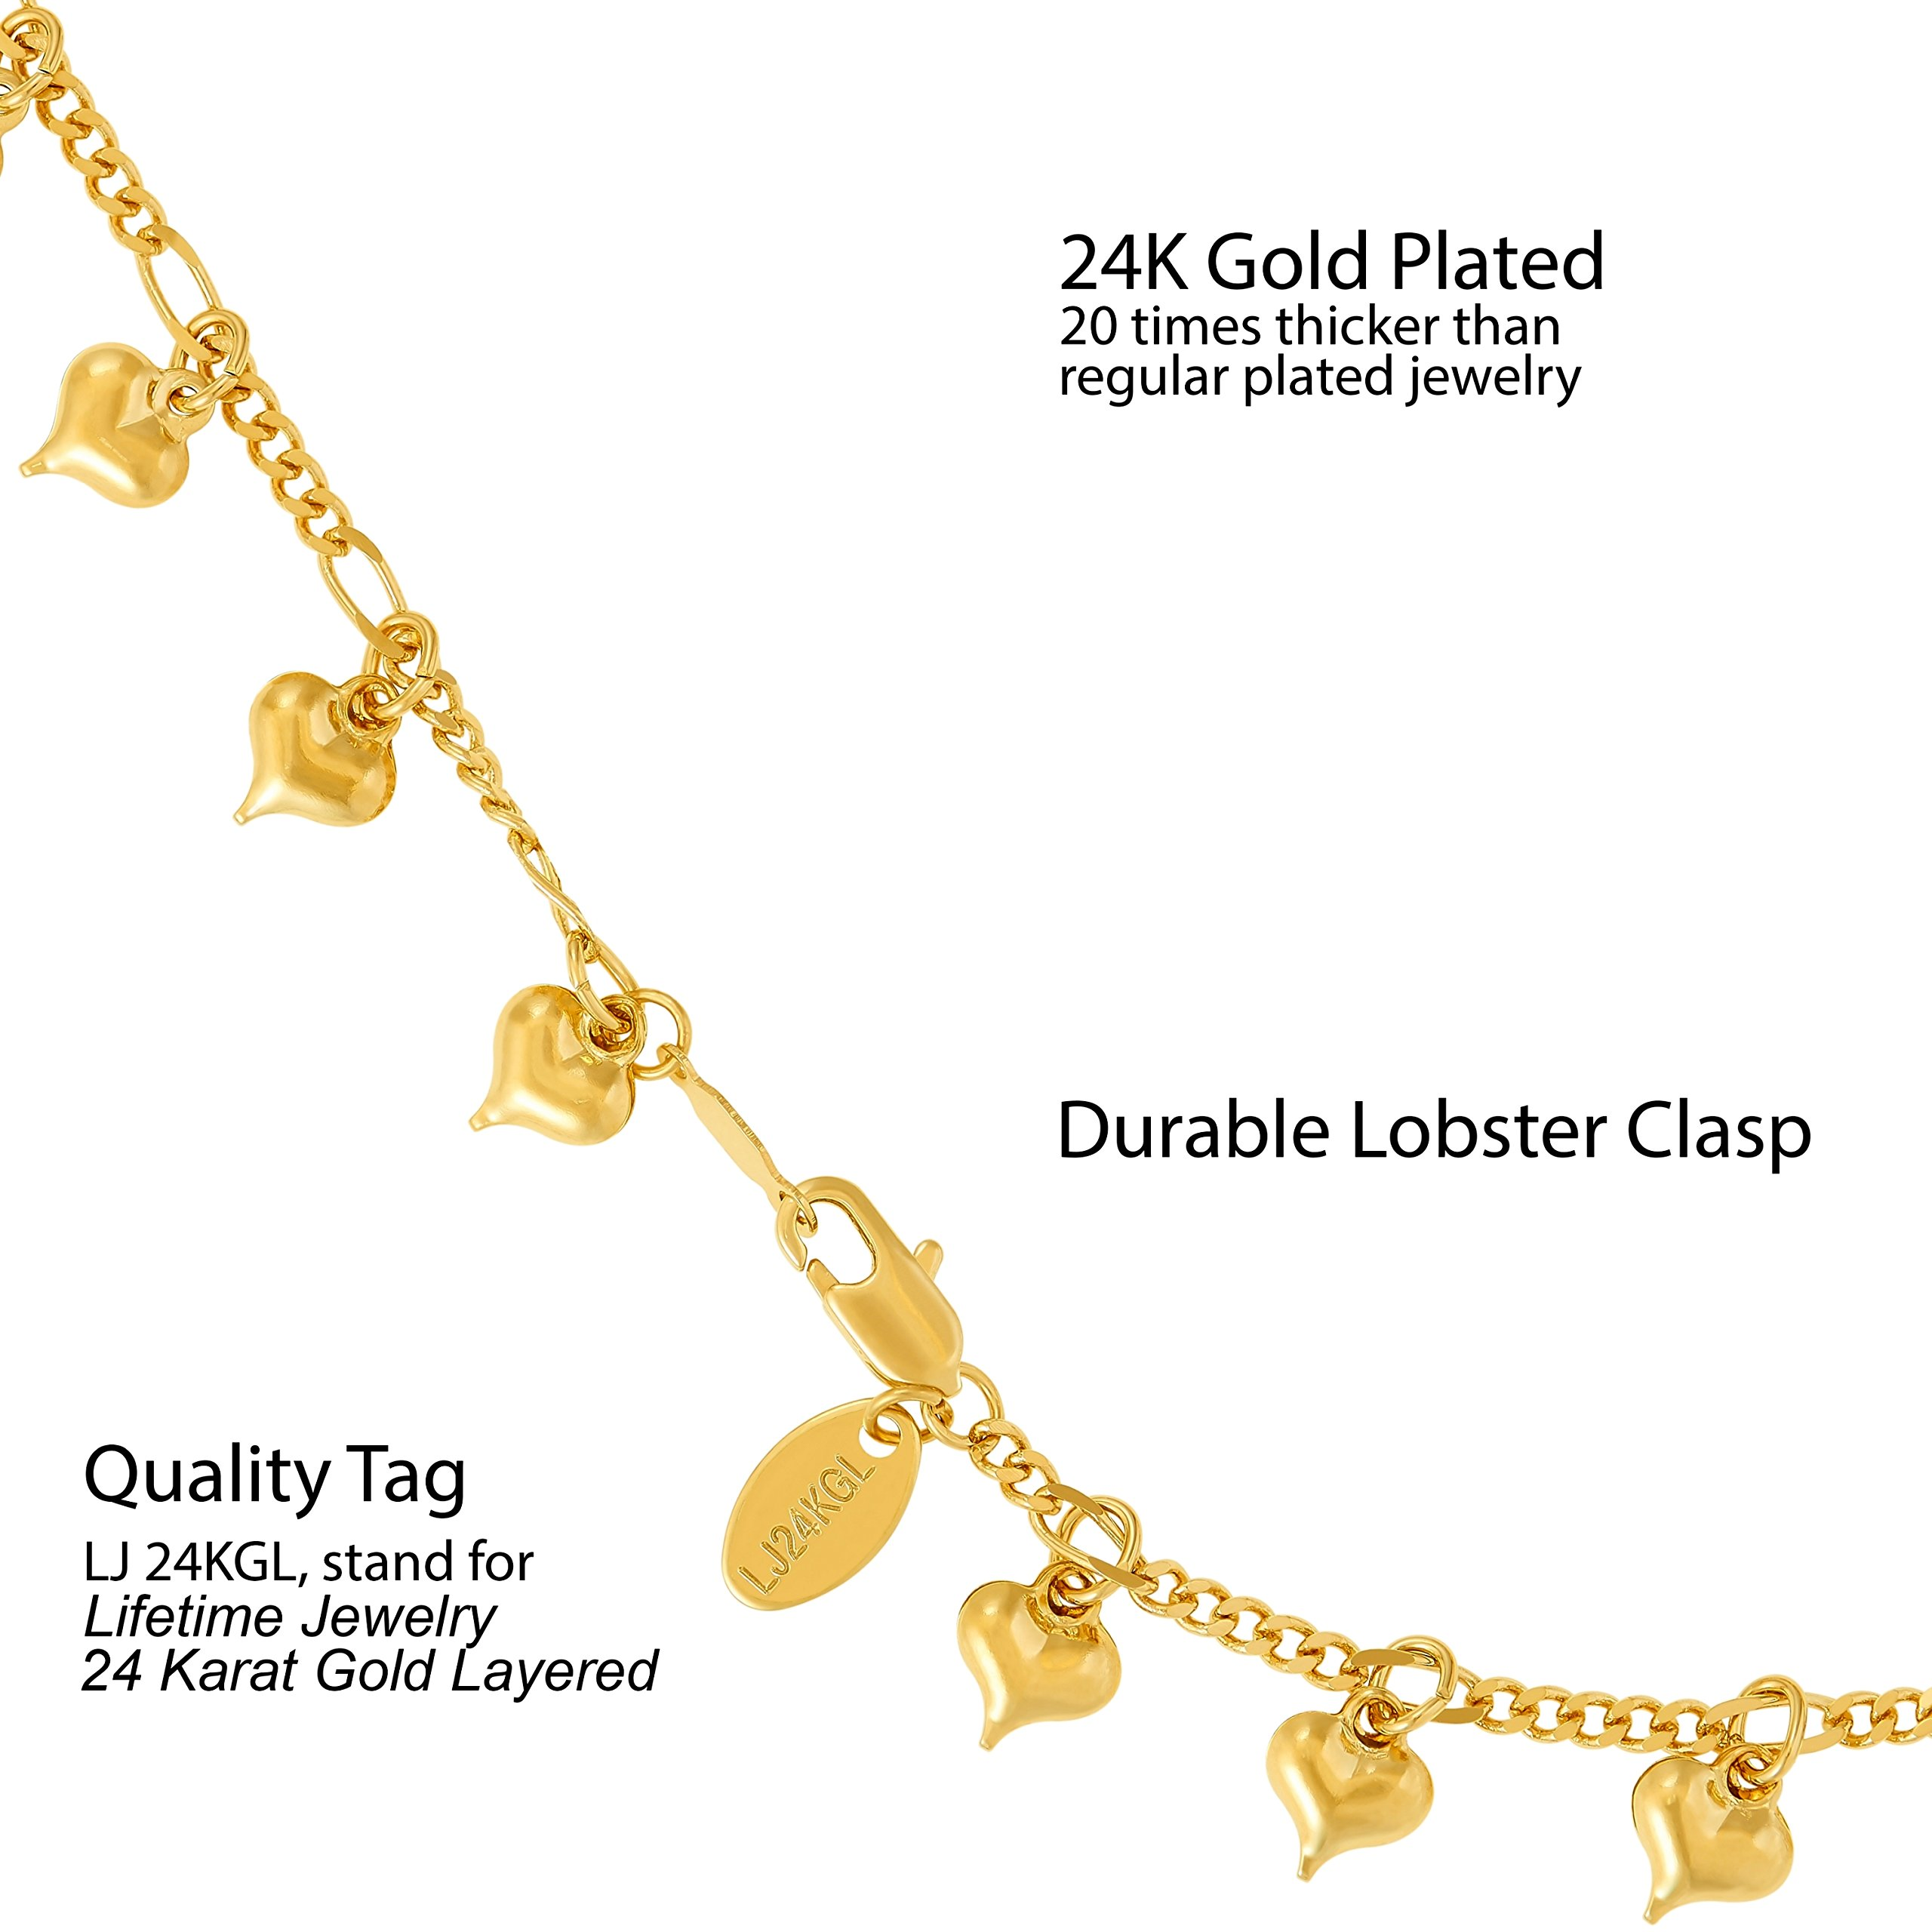 Lifetime Jewelry Anklets for Women and Teen Girls - 24K Gold Plated Chain with Dangling Hearts - Ankle Bracelet to Wear at Beach or Party - Cute Surfer Anklet - 9 10 and 11 inches (9) by Lifetime Jewelry (Image #4)